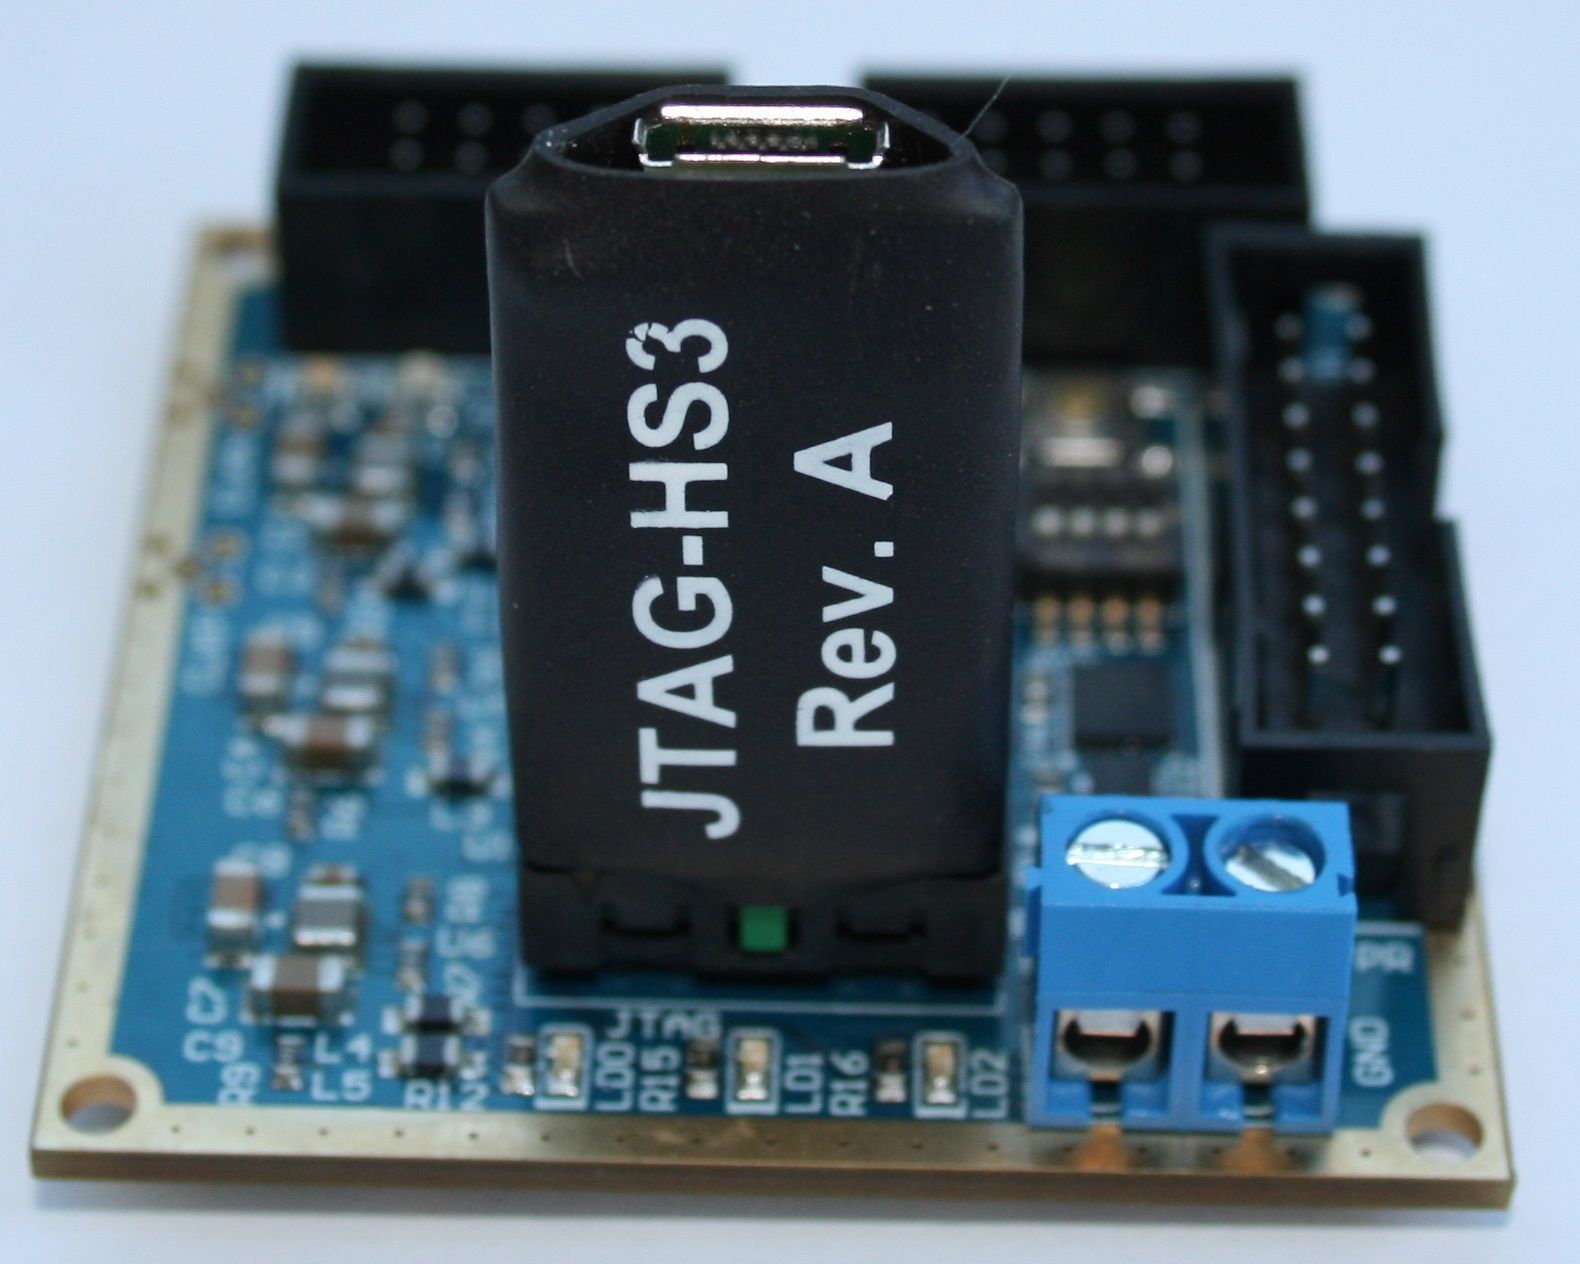 Tiny 5 X Cm Fpga Module With Xilinx Artix 7 Digilent Jtag Cable Schematic Usb Bottom Layer Resistor Jumpers